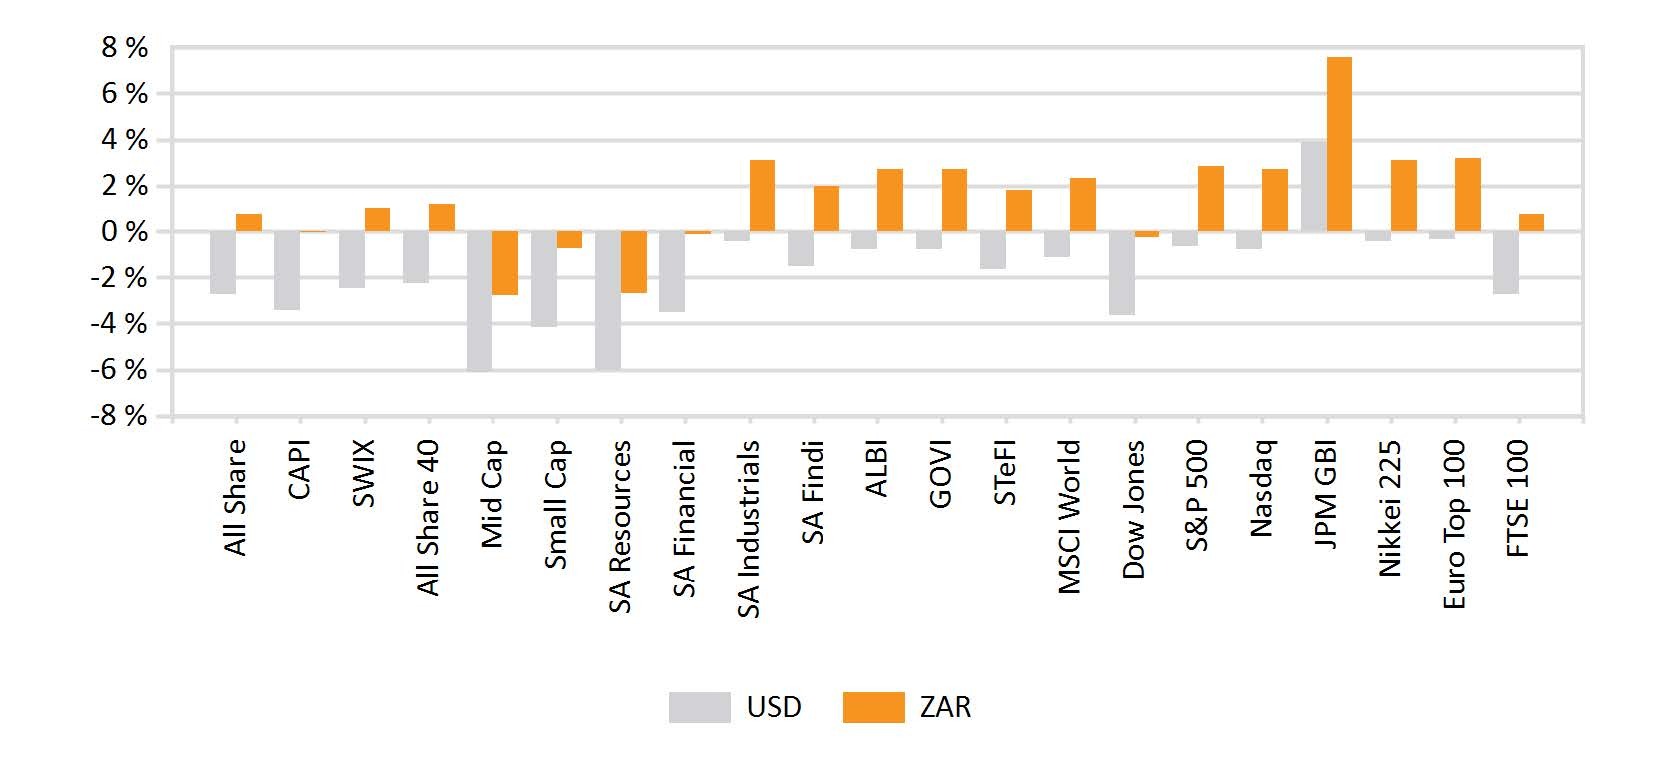 Monthly return of major indices (002)